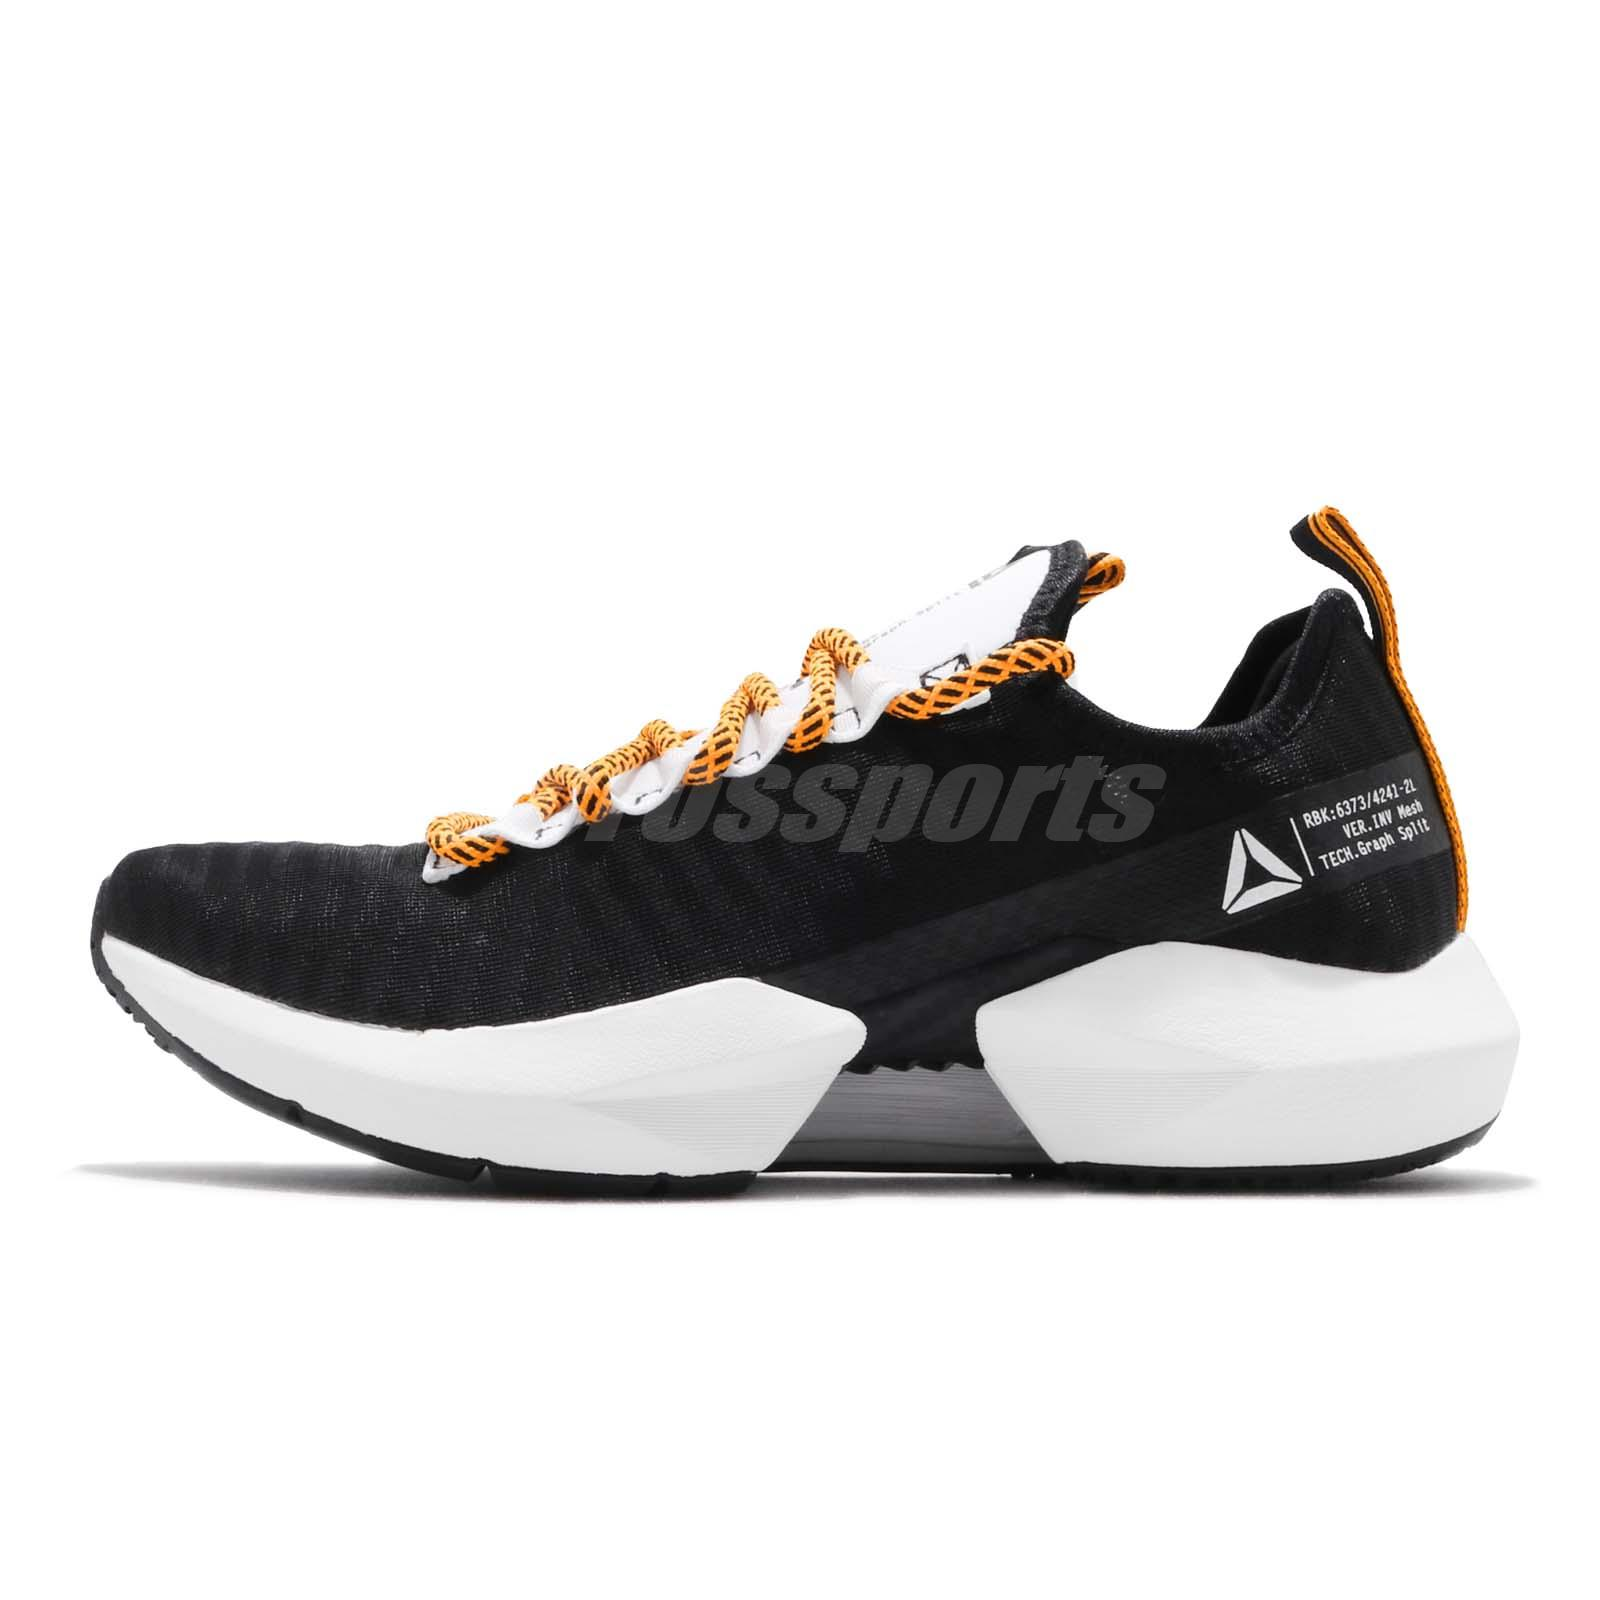 091dc3f4837 Reebok Sole Fury SE Black White Solar Gold Men Running Shoes Sneakers DV6919